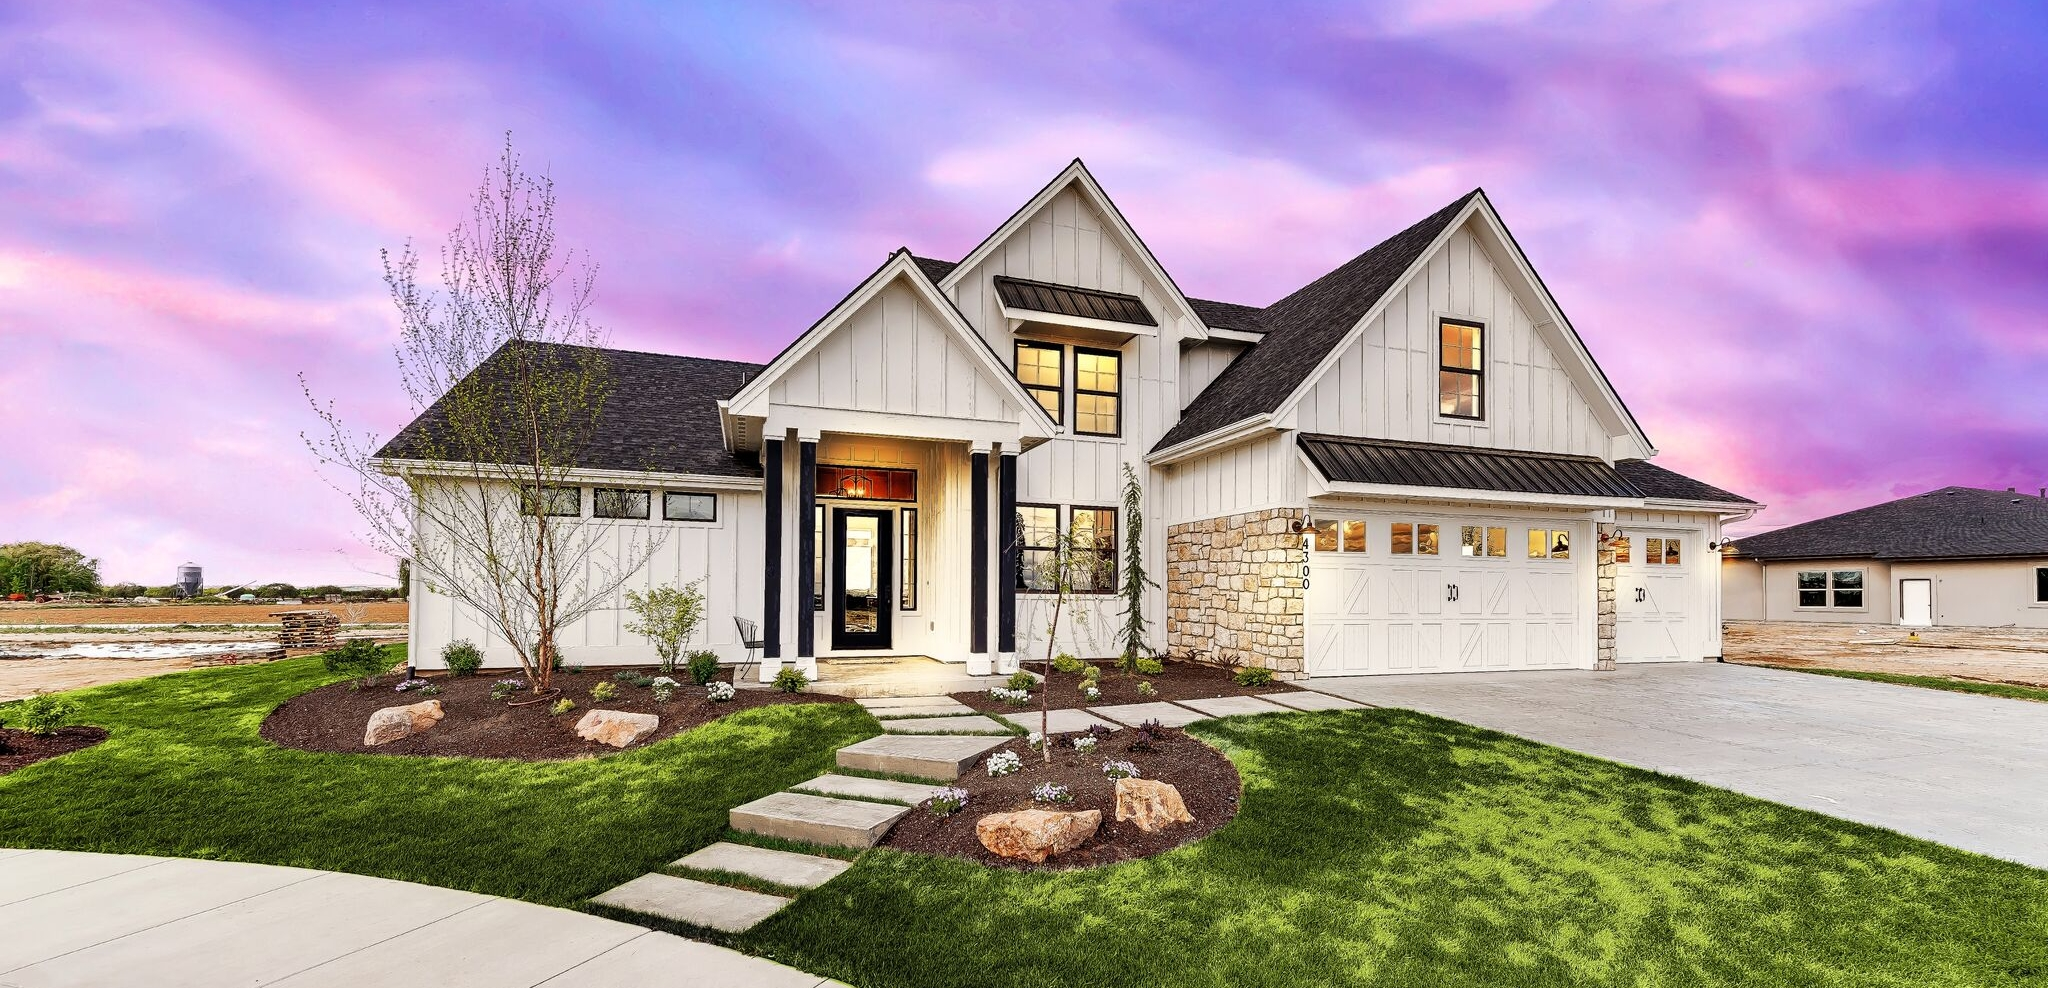 001_Front of Home1.jpg